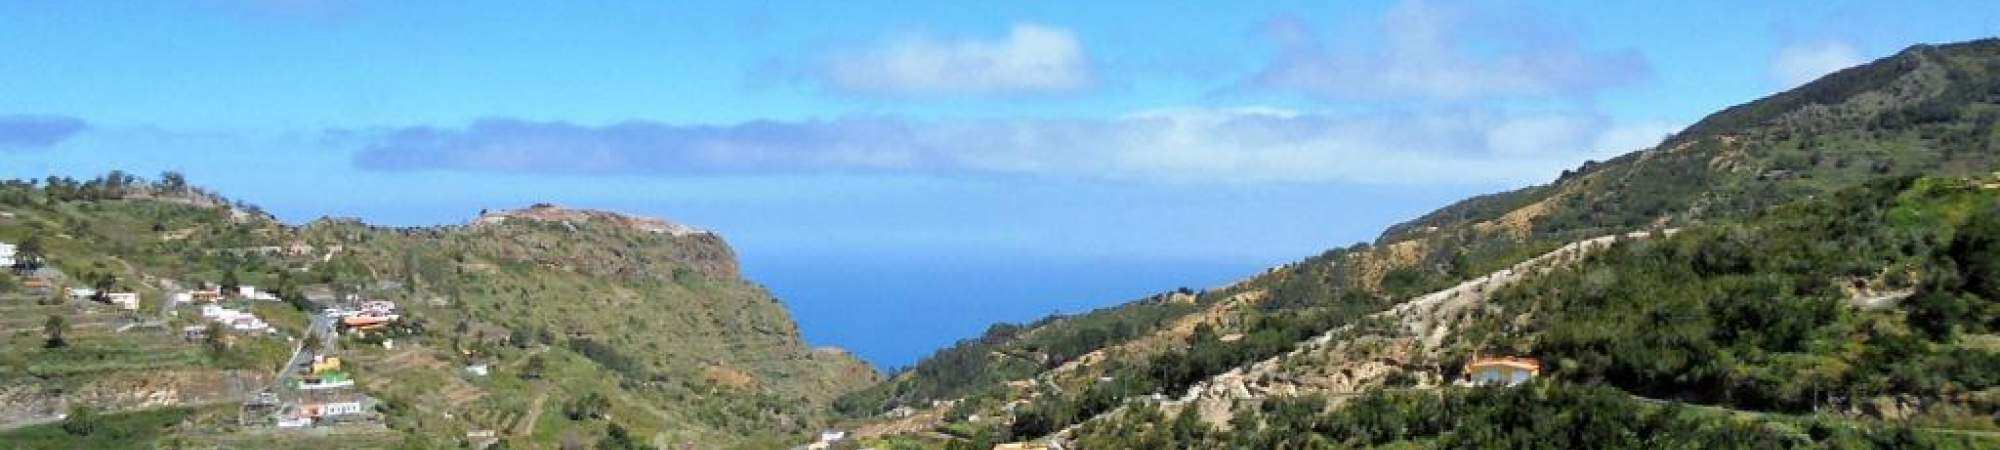 The small village Las Rosas on La Gomera